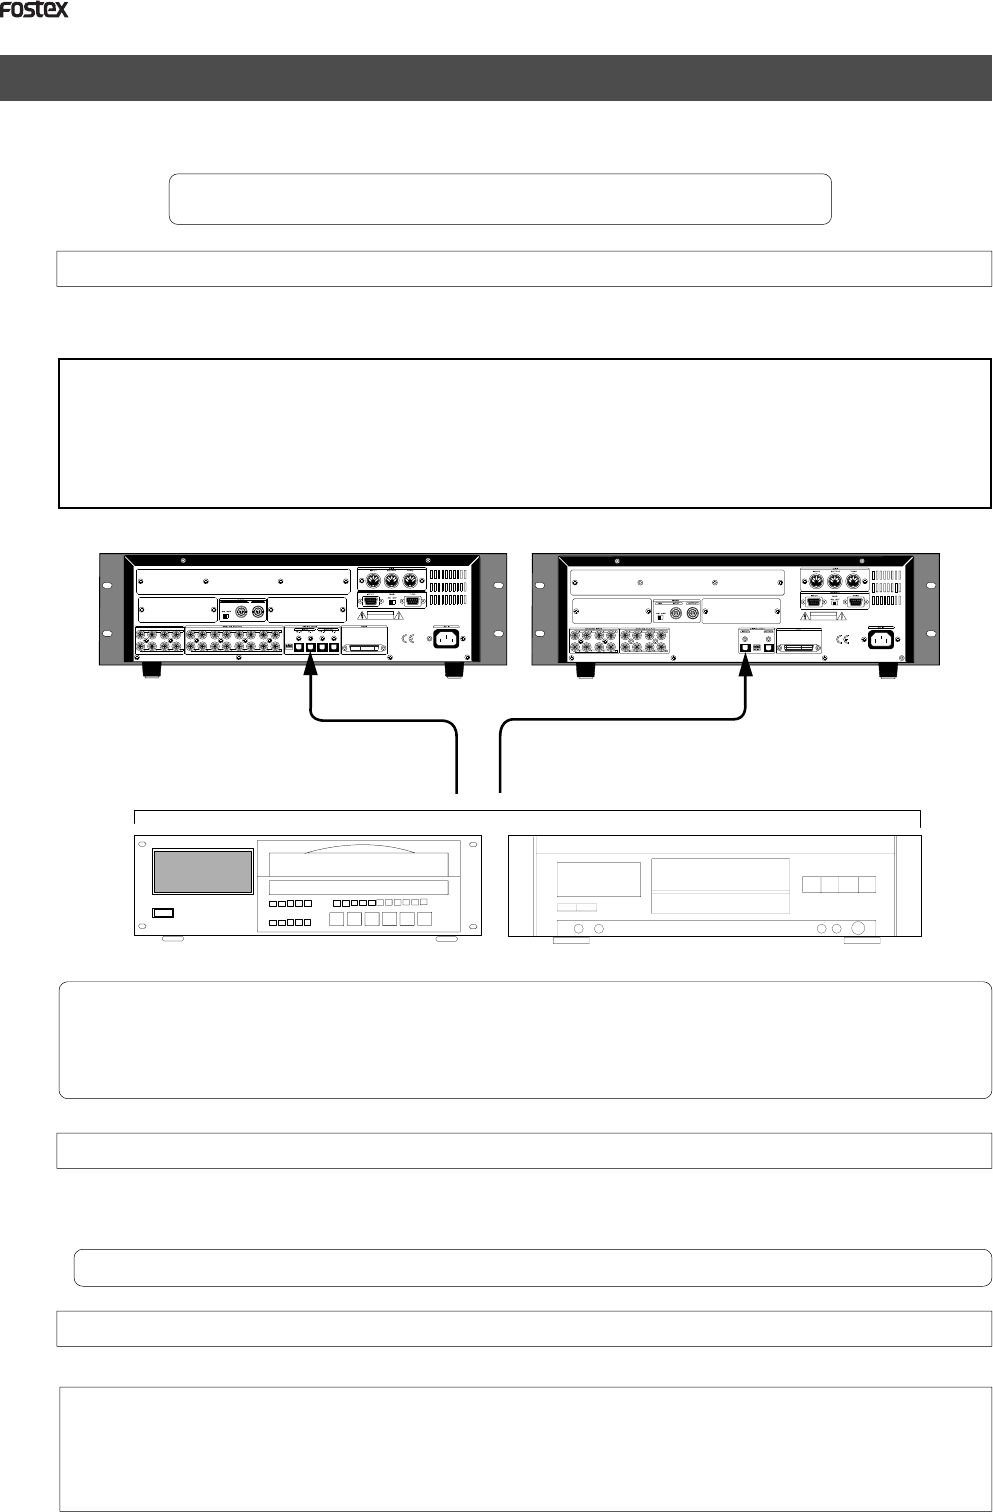 page 88 of fostex dvd recorder d824 user guide manualsonline com rh tv manualsonline com Quick Reference Guide User Guide Template